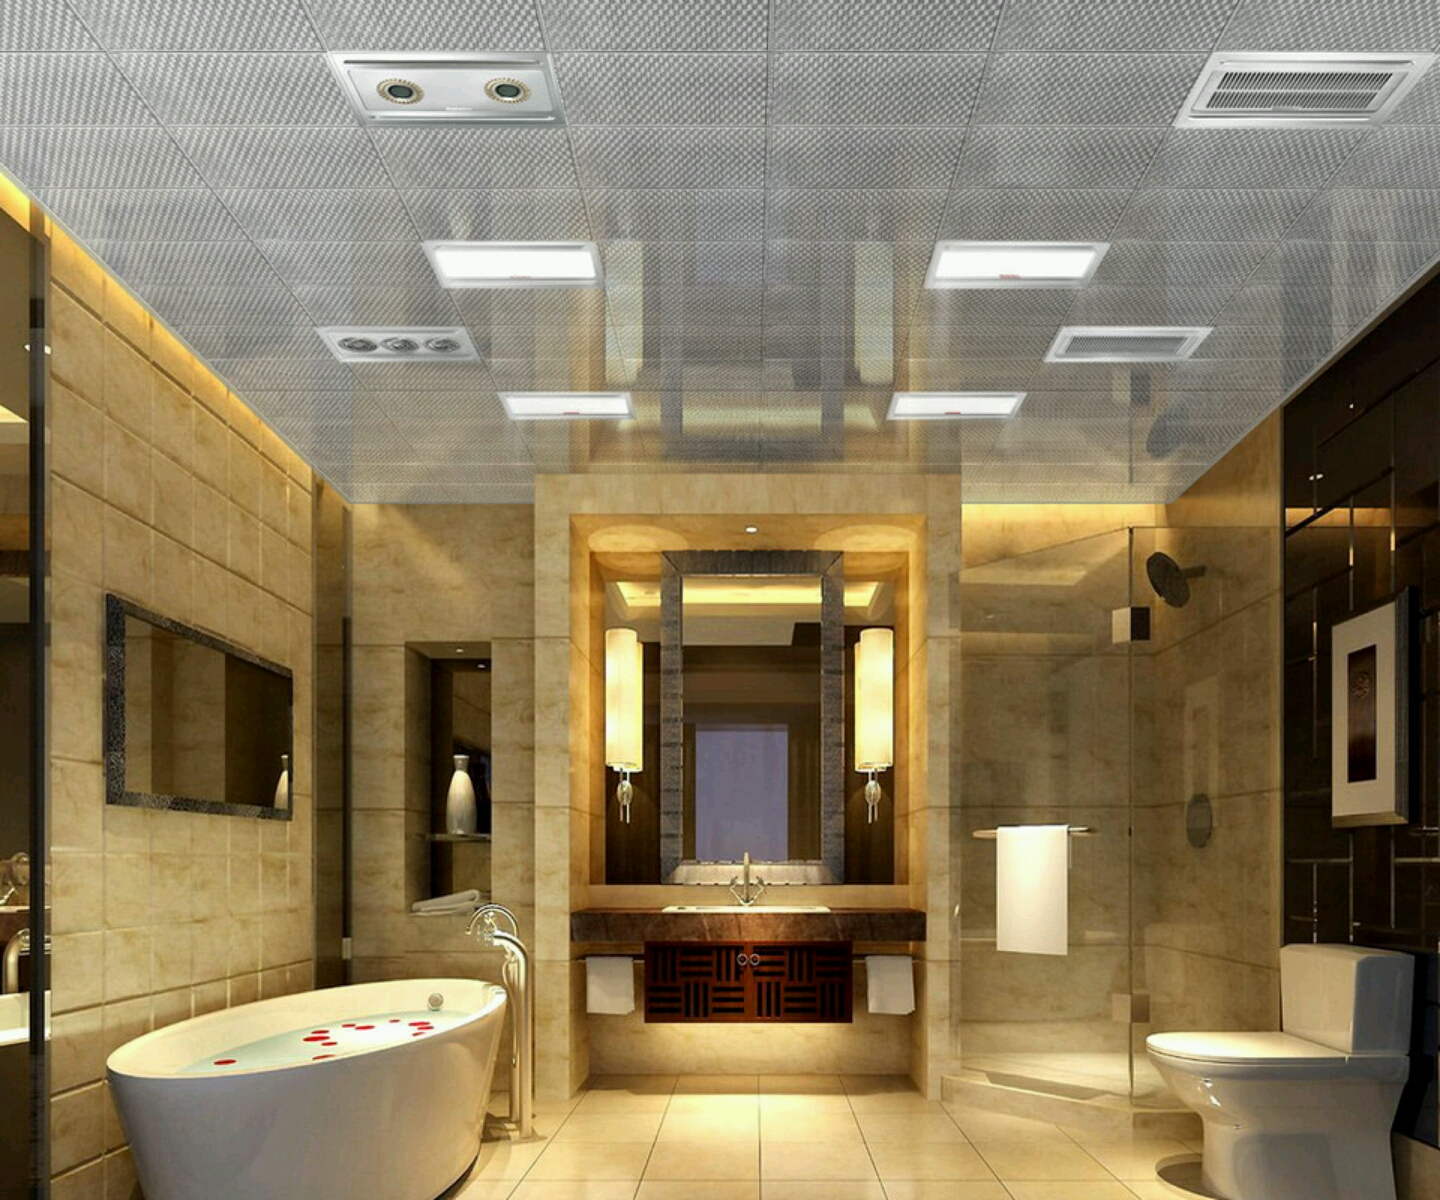 30 beautiful pictures and ideas high end bathroom tile designs for Bathroom tile designs 2012